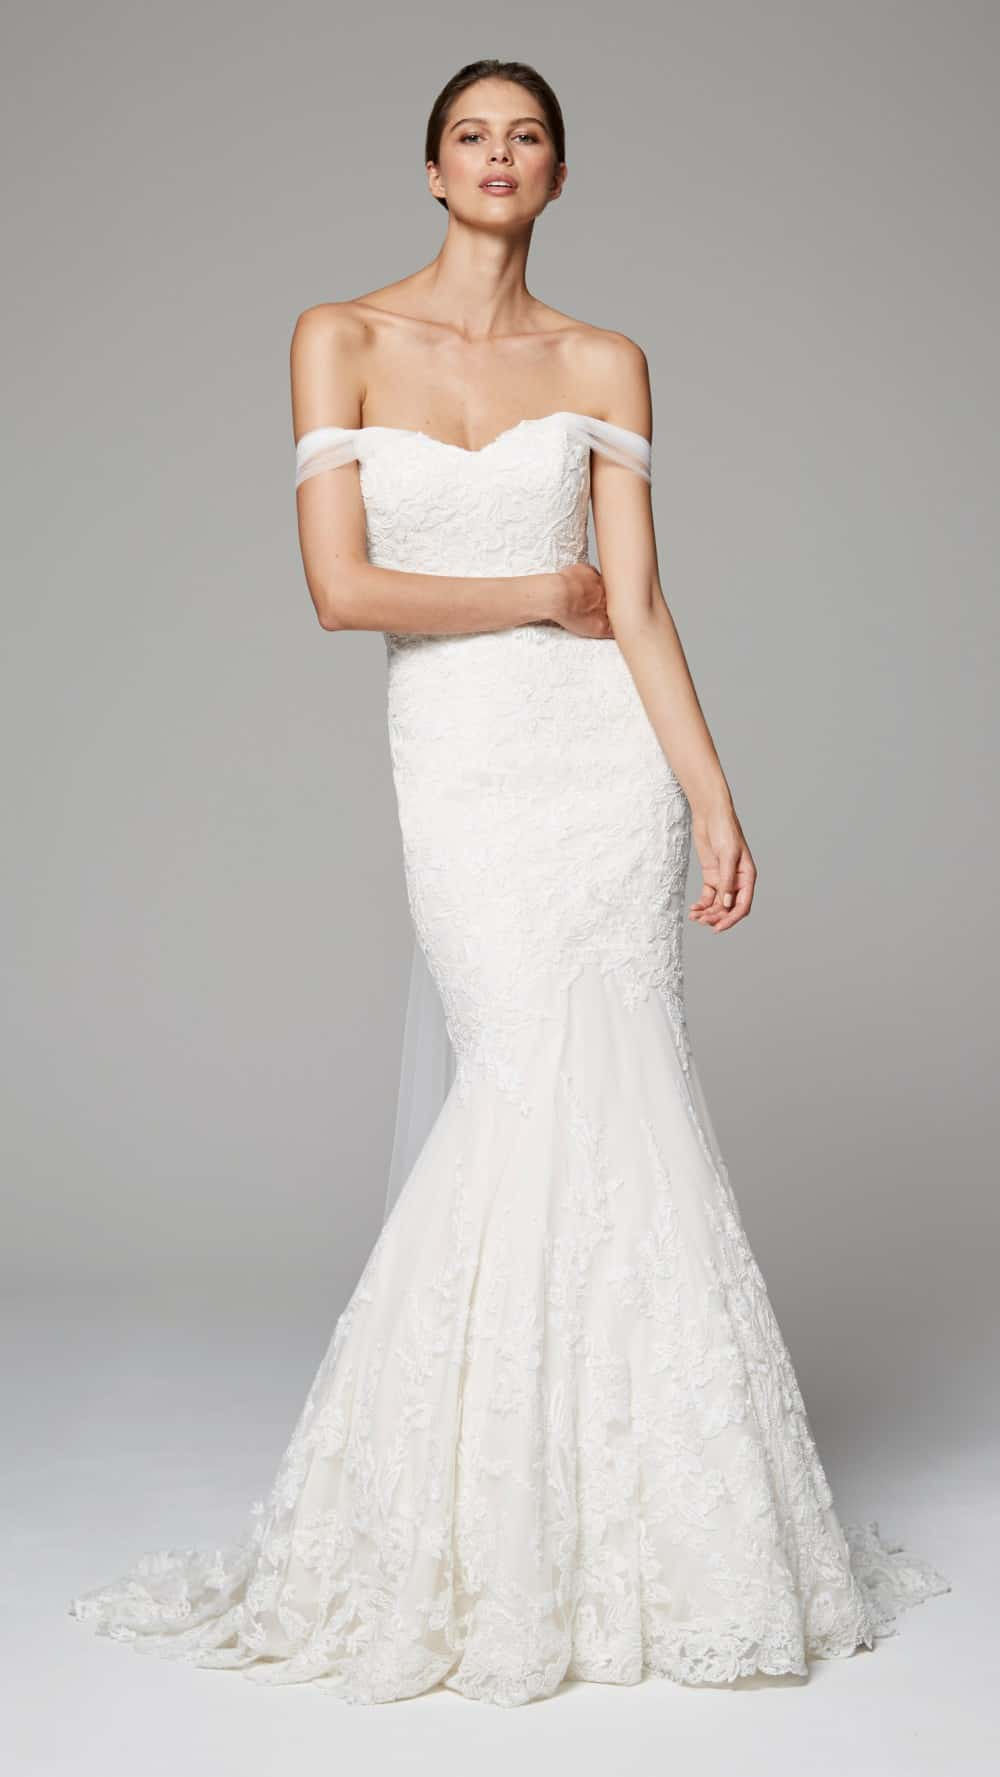 raven by anne barge off-the-shoulder lace wedding dress